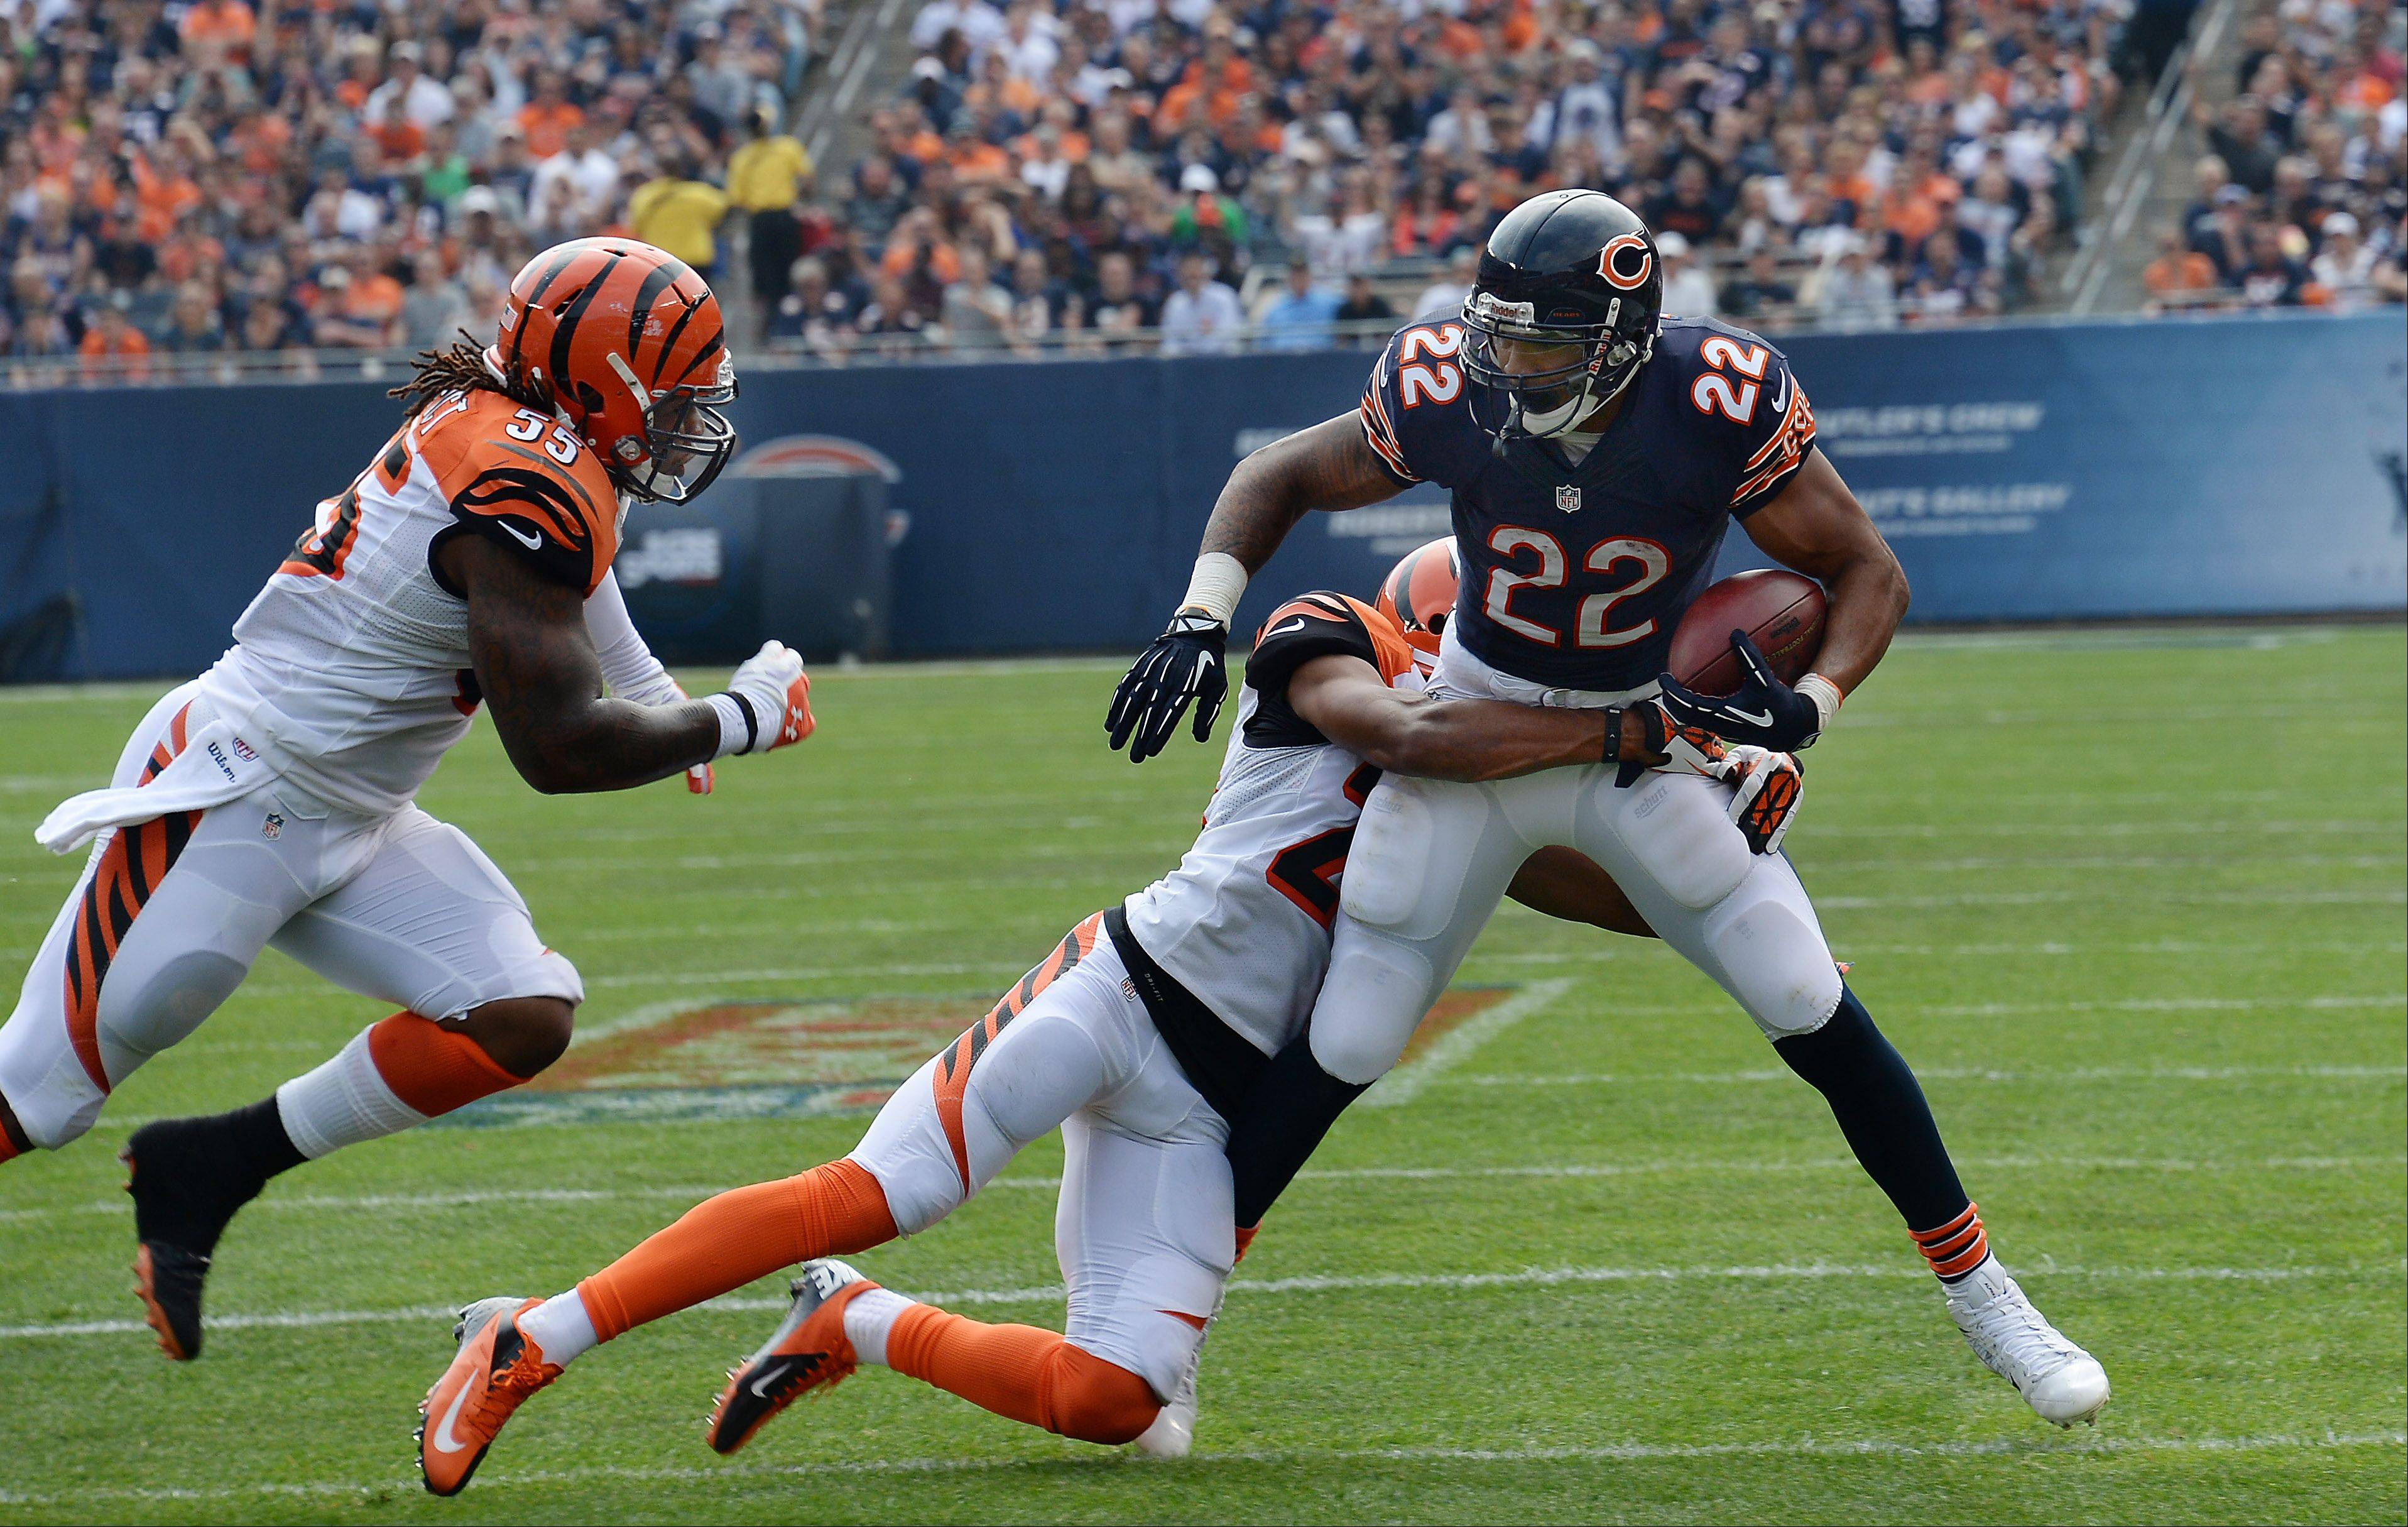 Chicago Bears Matt Forte runs for short yardage as he is tackled by Bengals Leon Hall in the first half of the season opener against the Cincinnati Bengals at Soldier Field in Chicago on Sunday.